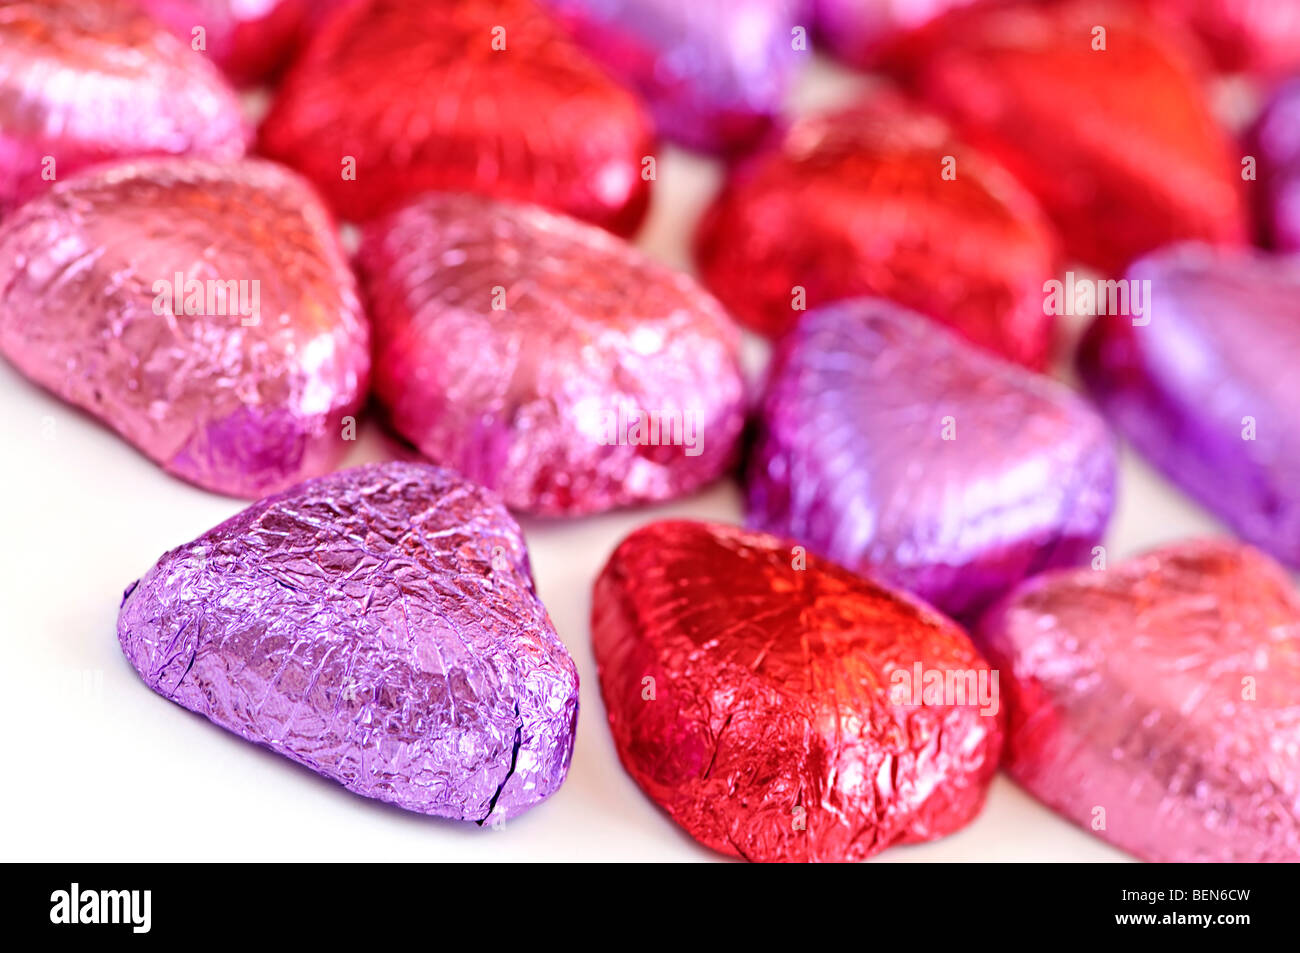 Valentine's chocolates wrapped in red and purple foil on white background - Stock Image